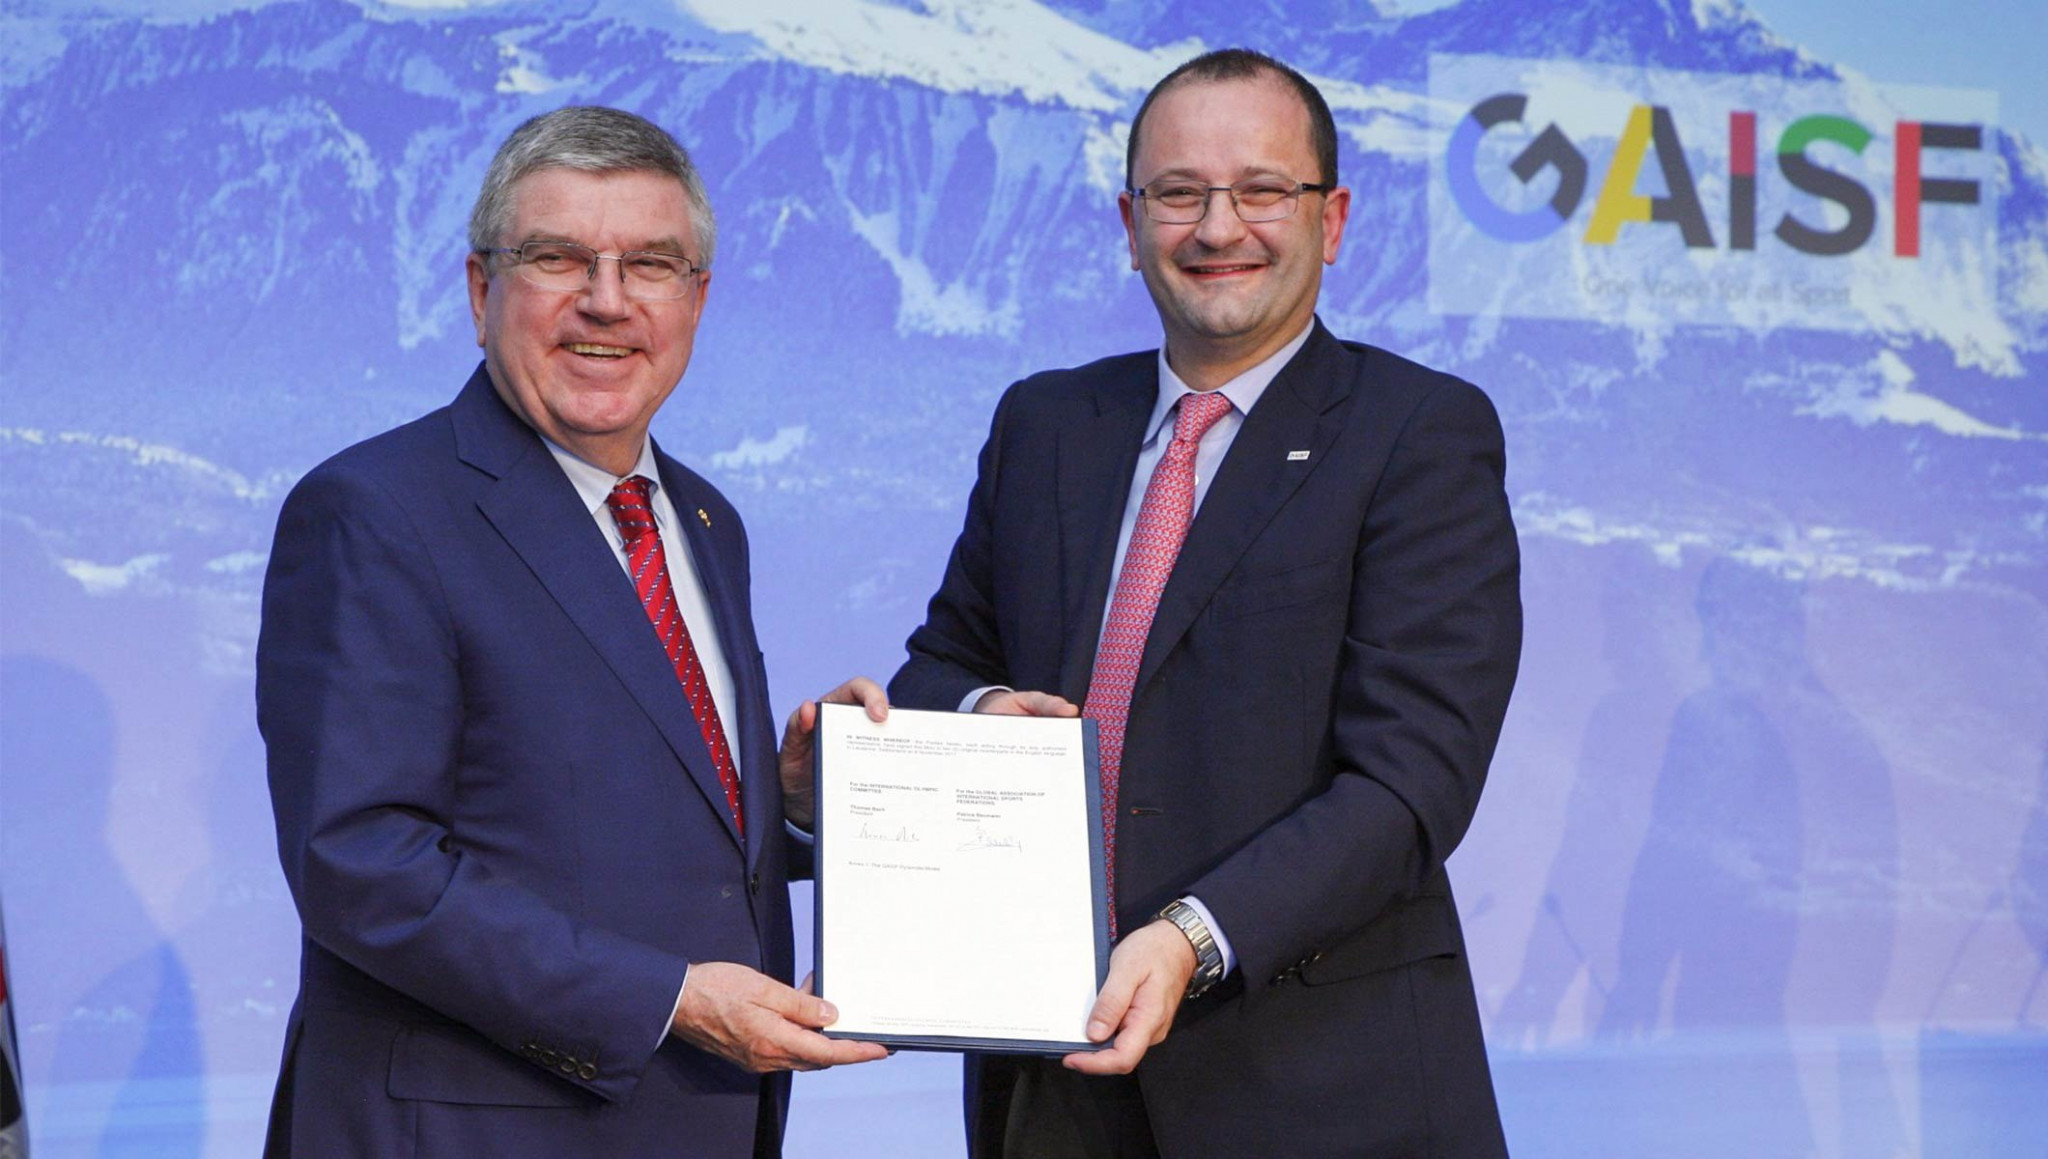 IOC President Thomas Bach, left, and GAISF counterpart Patrick Baumann signed the MoU ©IOC